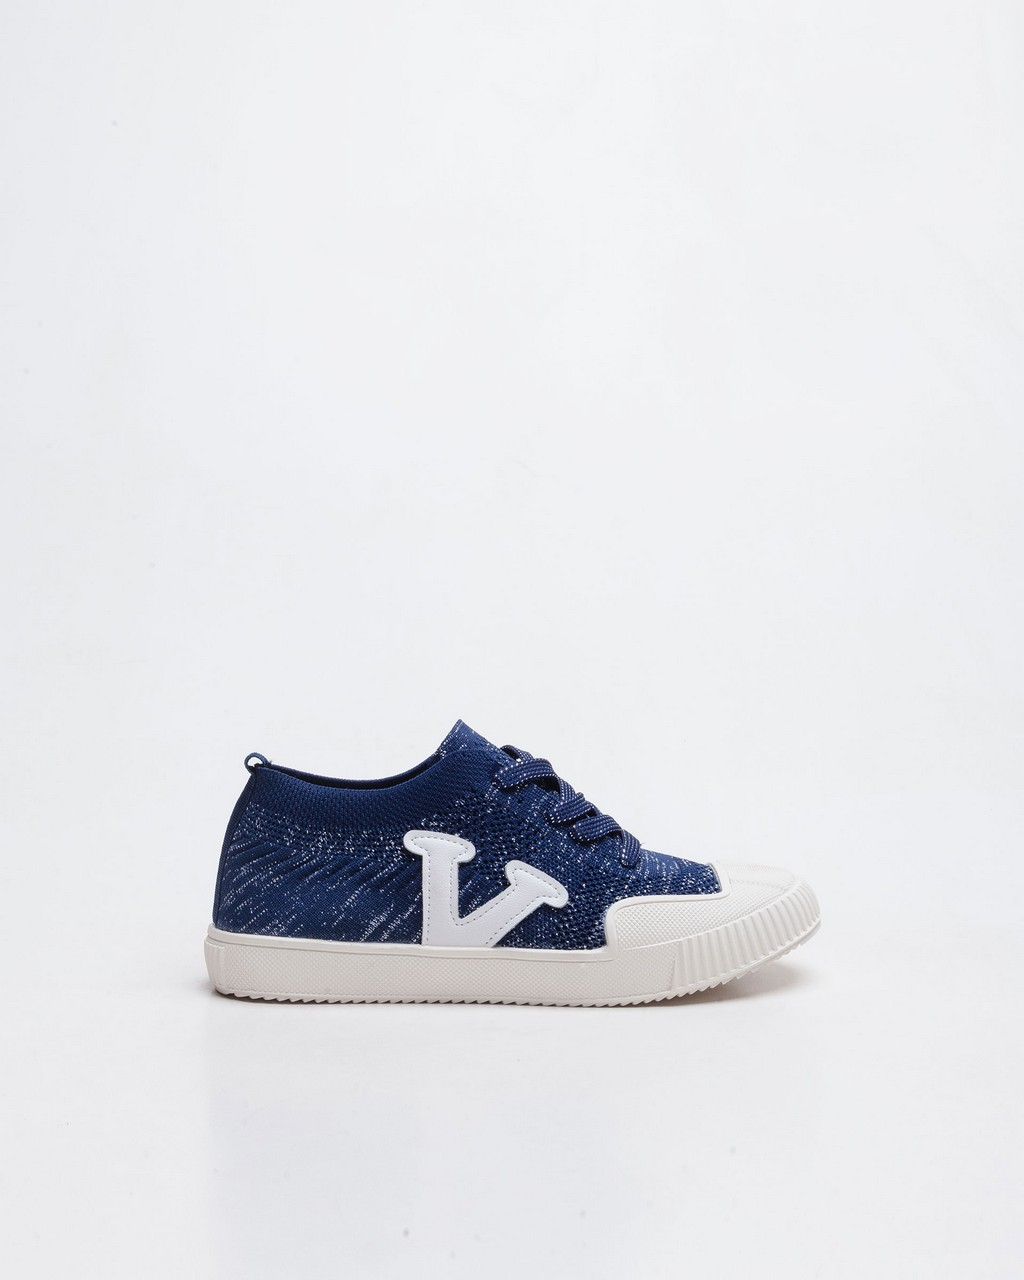 Tagtraume Queens-04 - Navy(네이비)